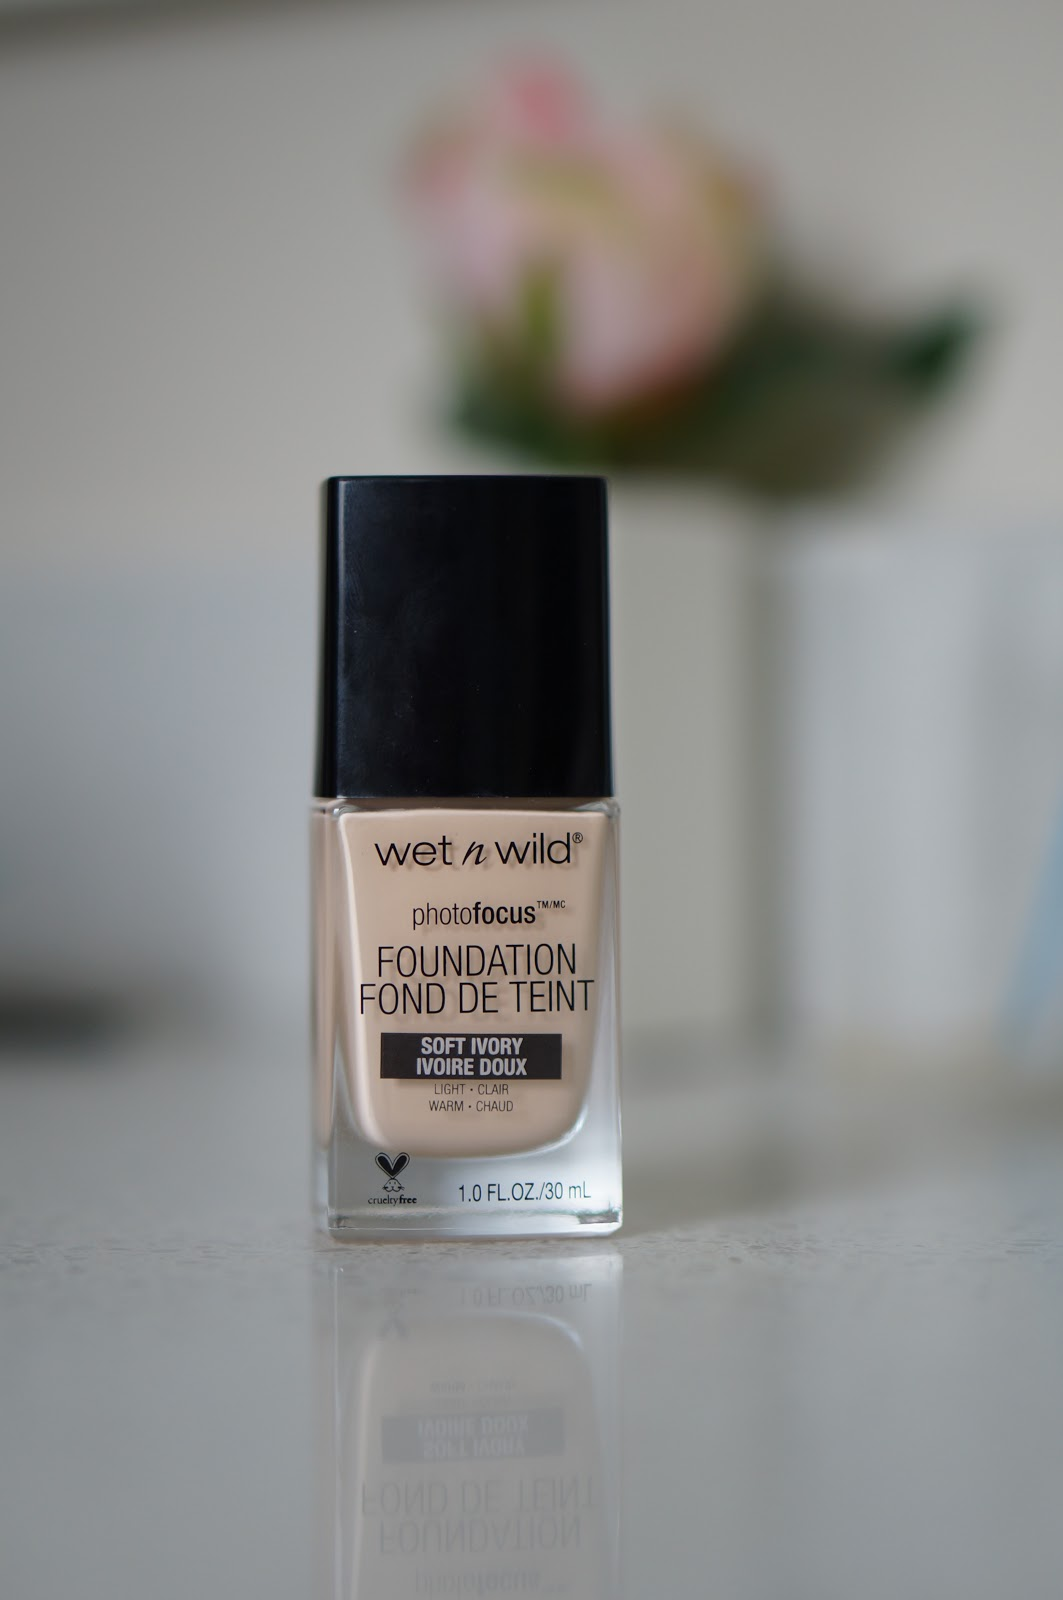 Popular North Carolina style blogger Rebecca Lately reviews the Wet n Wild Photo Focus Foundation in her cruelty free foundation series.  Click here to read her thoughts!